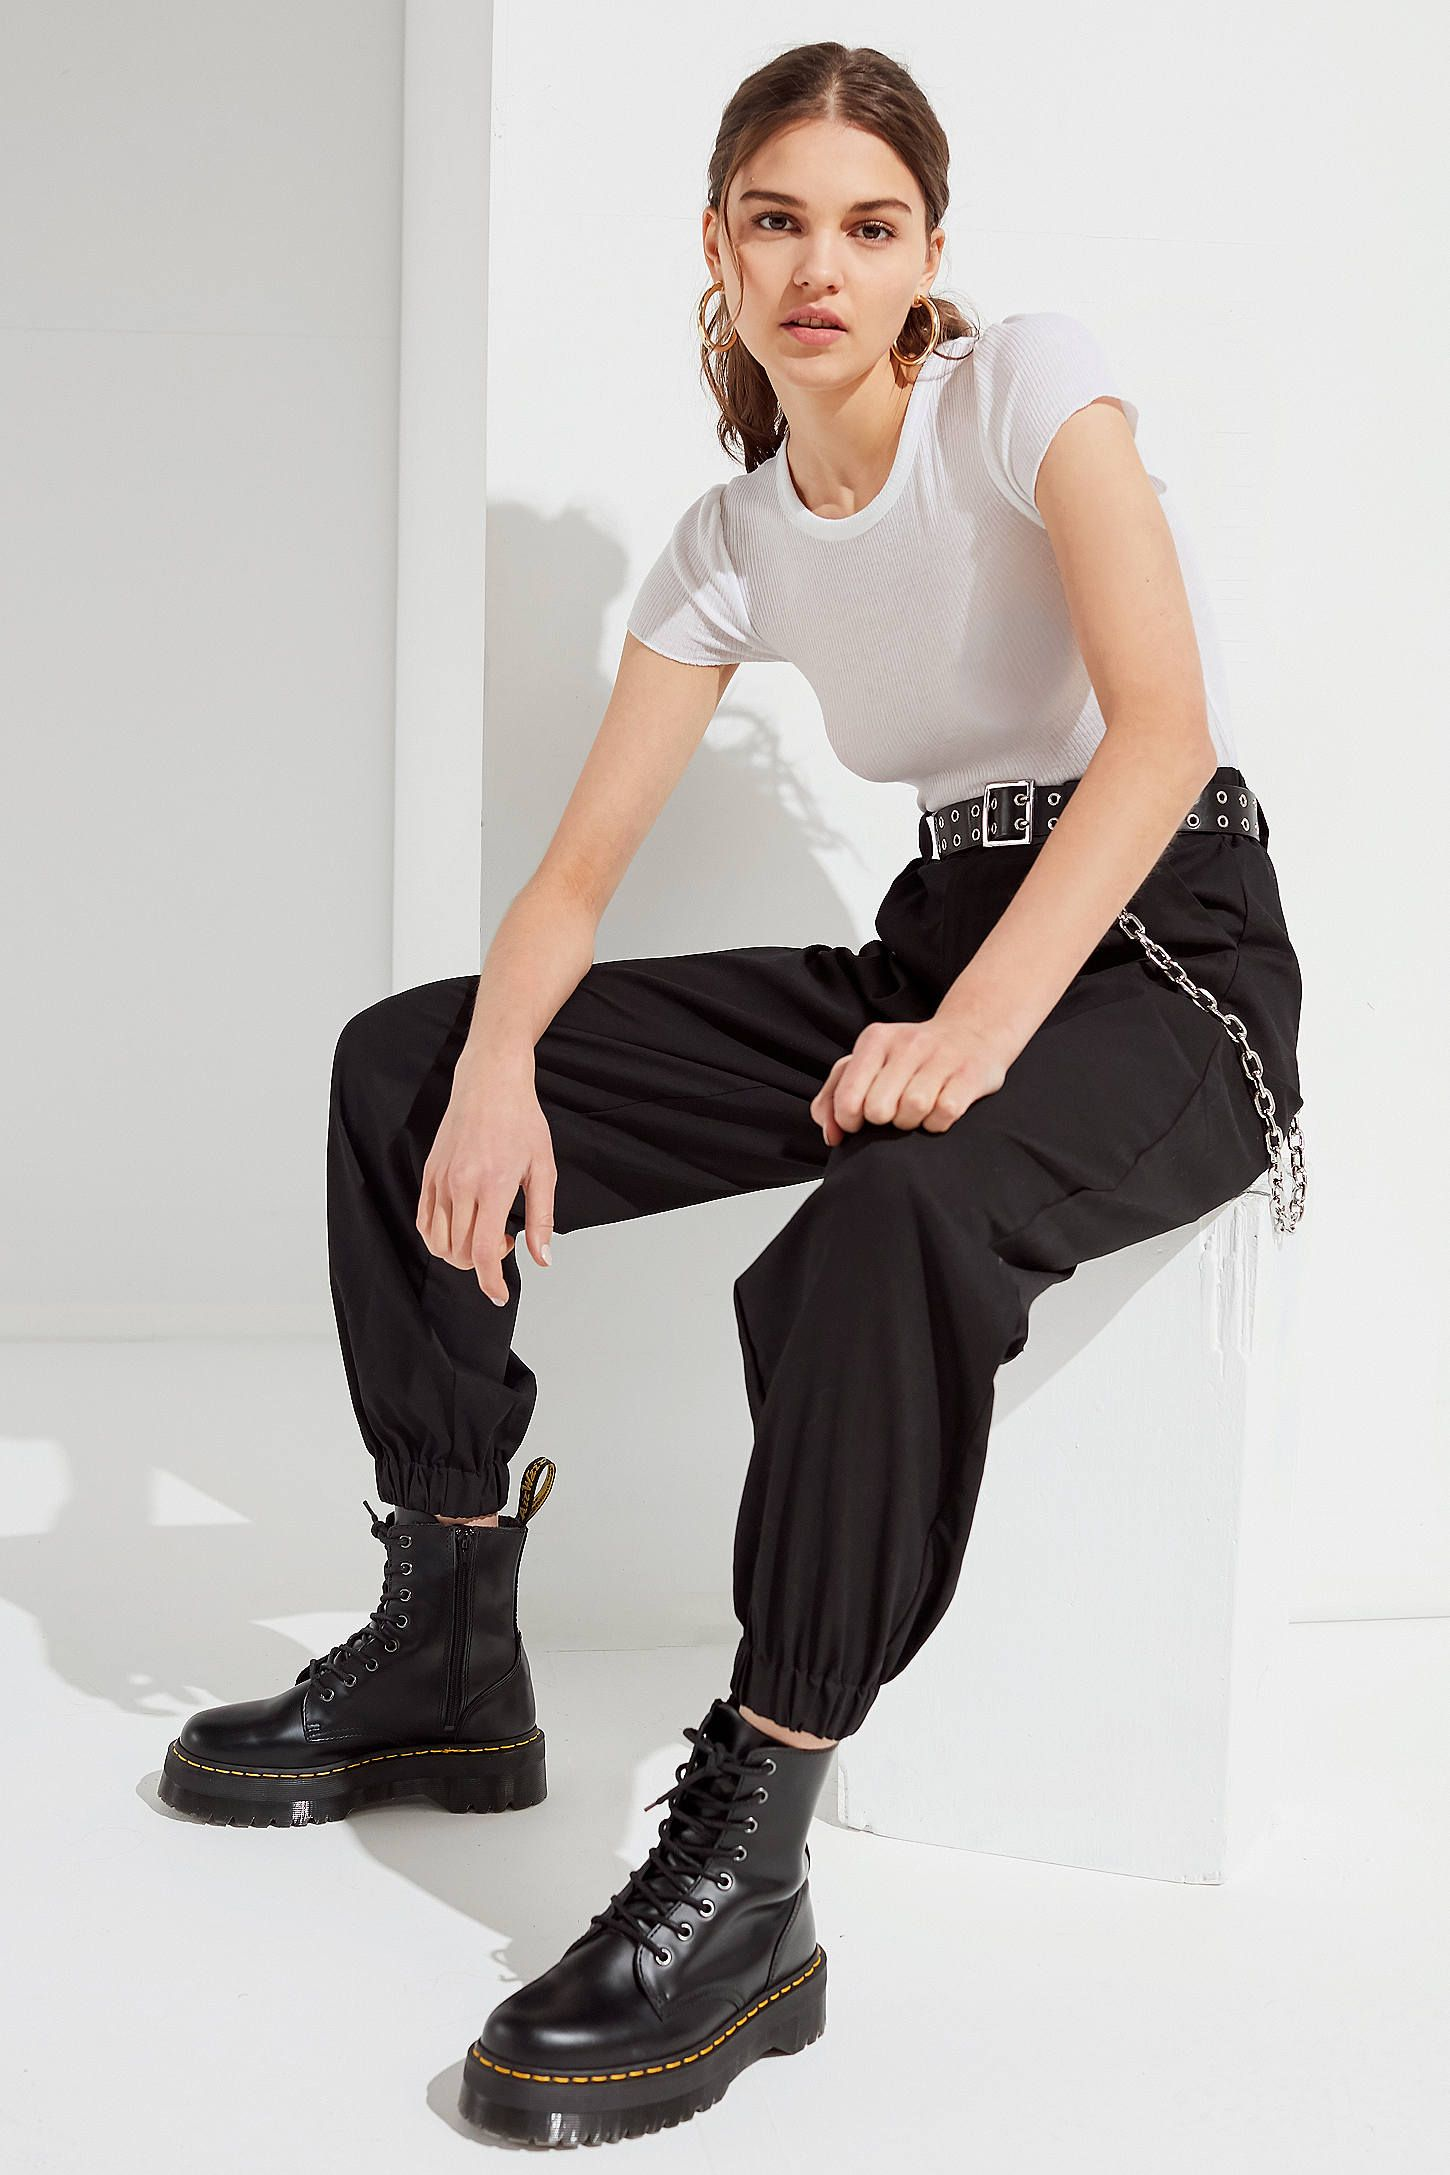 50662cefbcc Shop I.AM.GIA Cobain Relaxed-Fit Chain Pant at Urban Outfitters today. We  carry all the latest styles